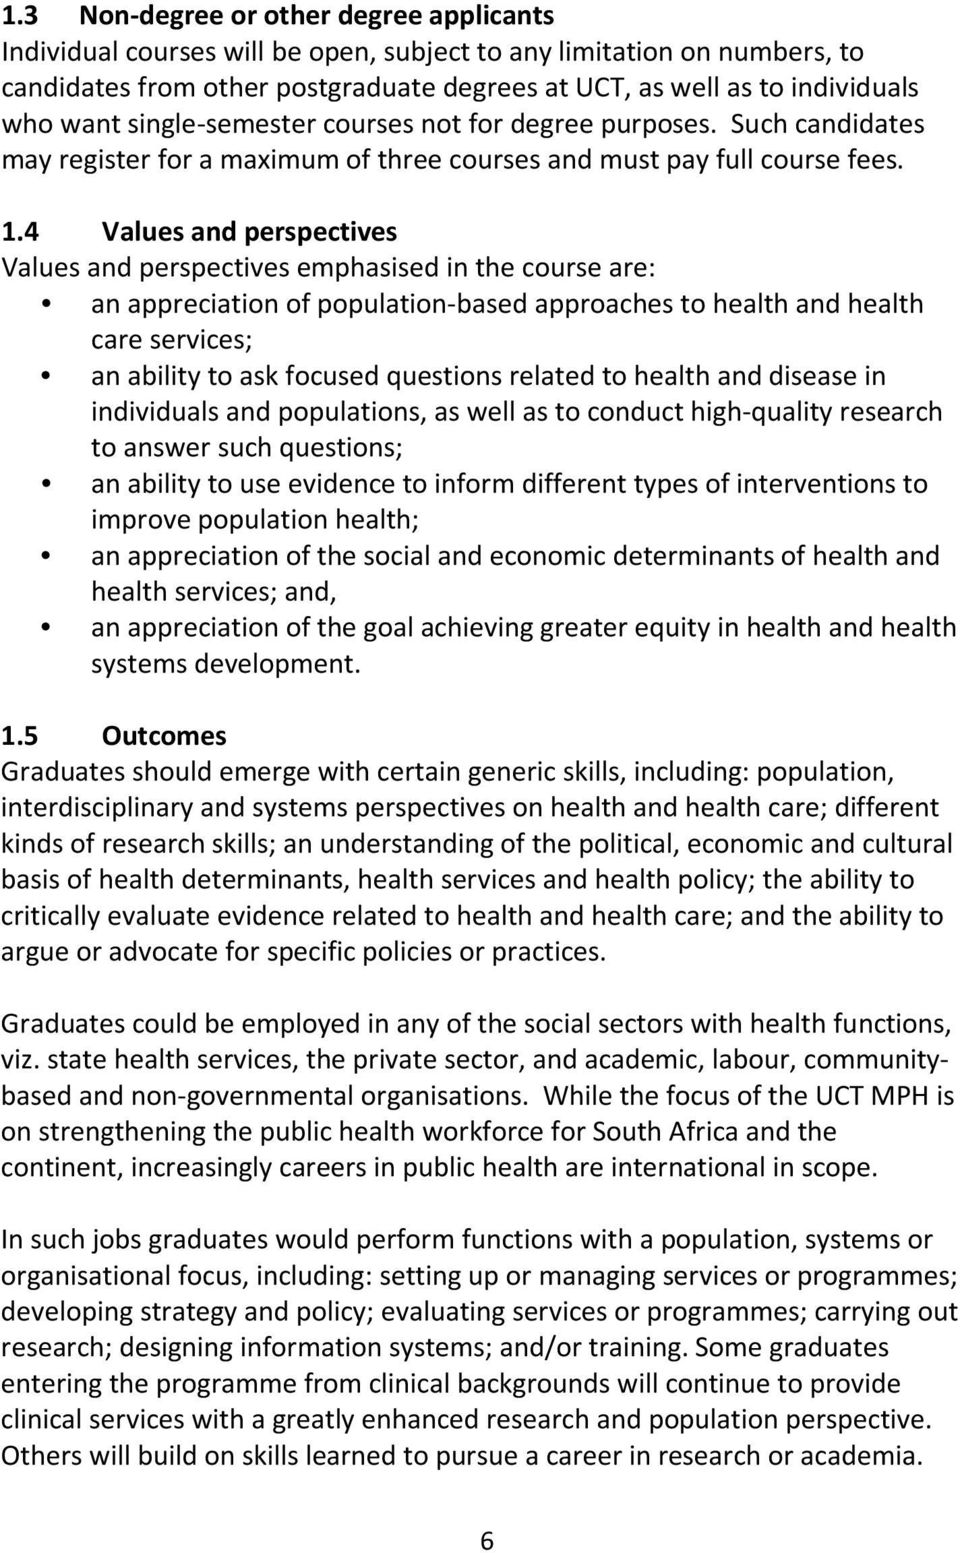 4 Values and perspectives Values and perspectives emphasised in the course are: an appreciation of population-based approaches to health and health care services; an ability to ask focused questions